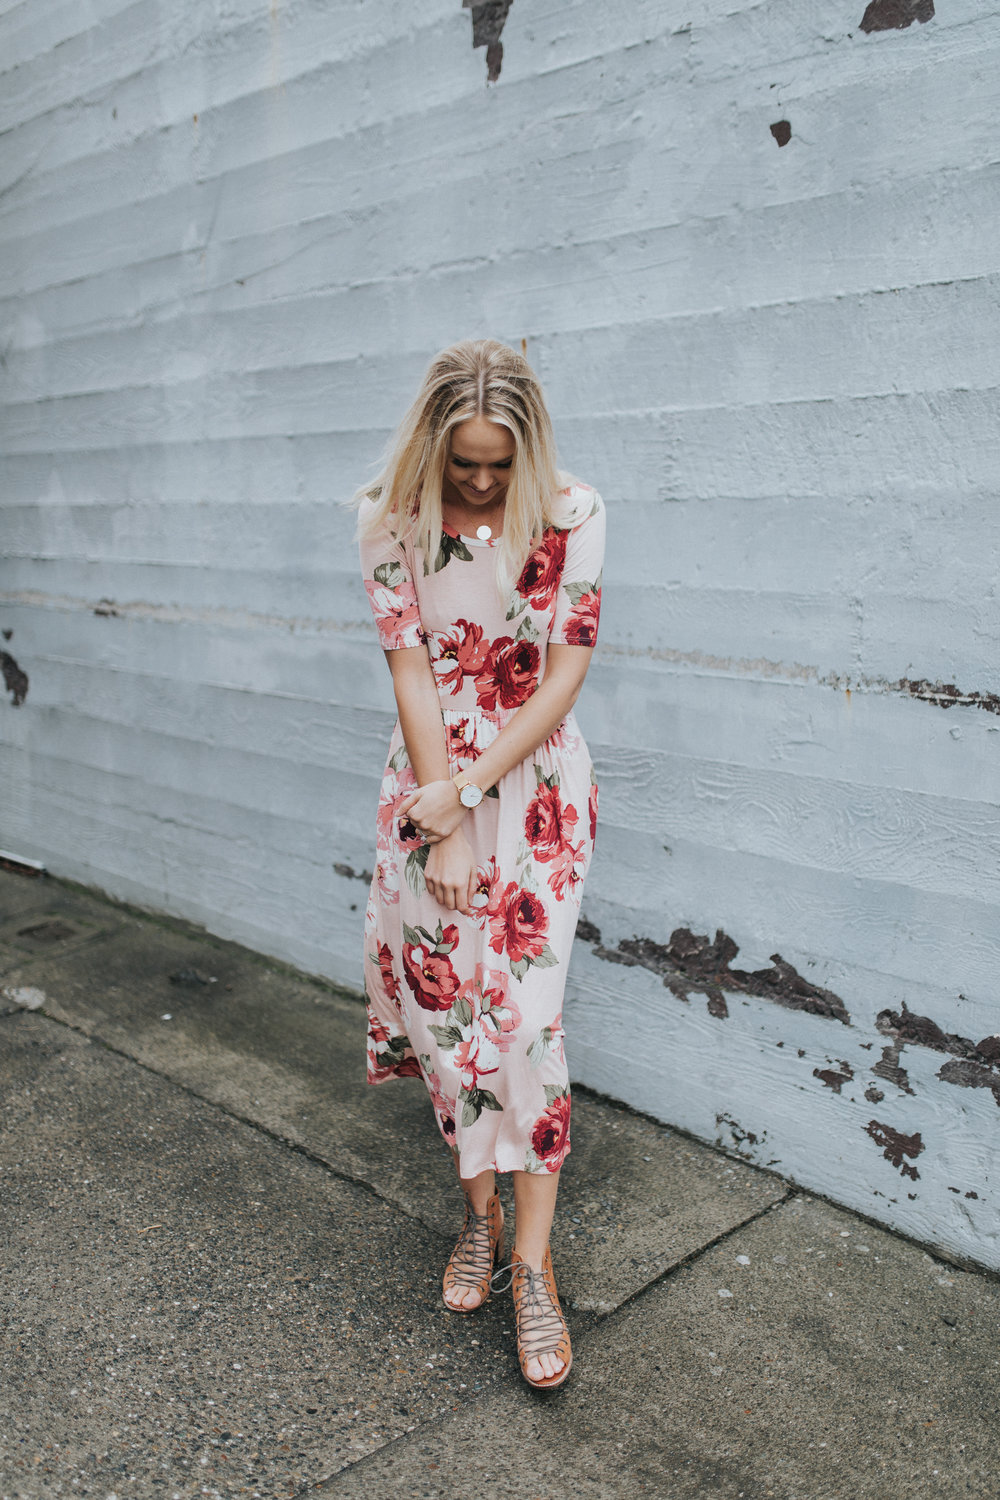 Shop KarlieRae floral midi dress | @karlierae @shopkarlierae